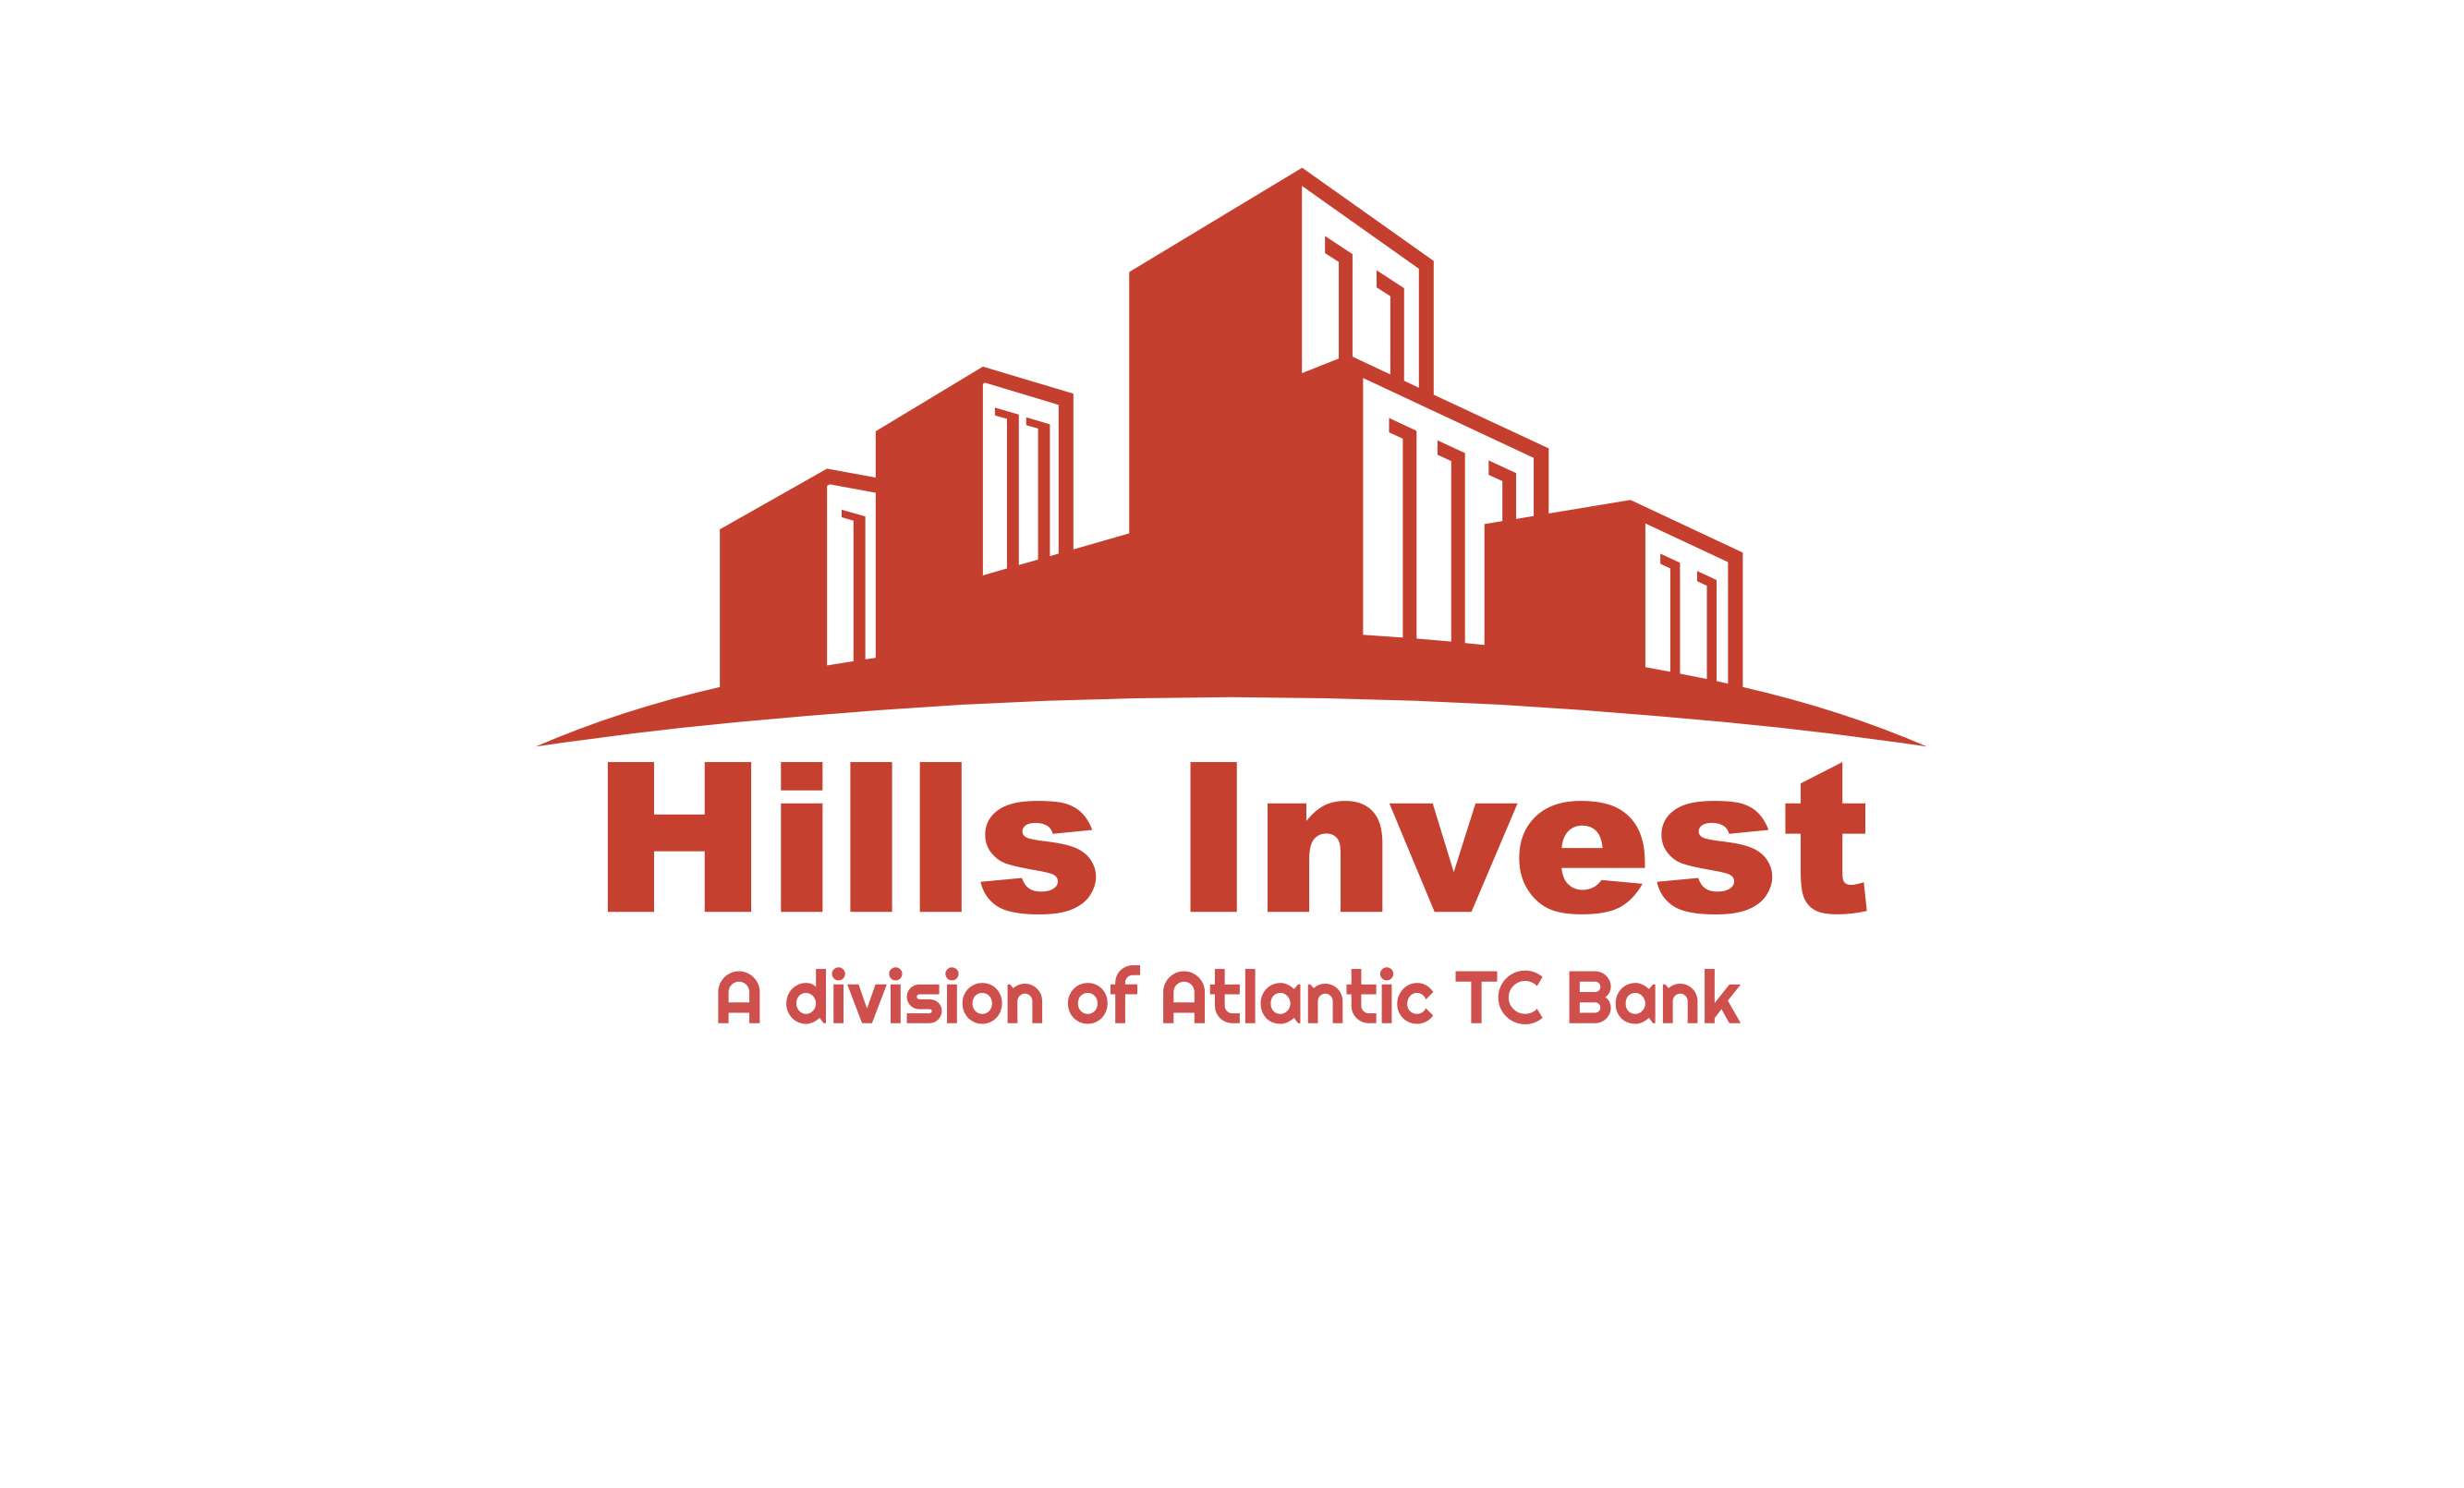 hills invest deposits qia gets to open an investment account for